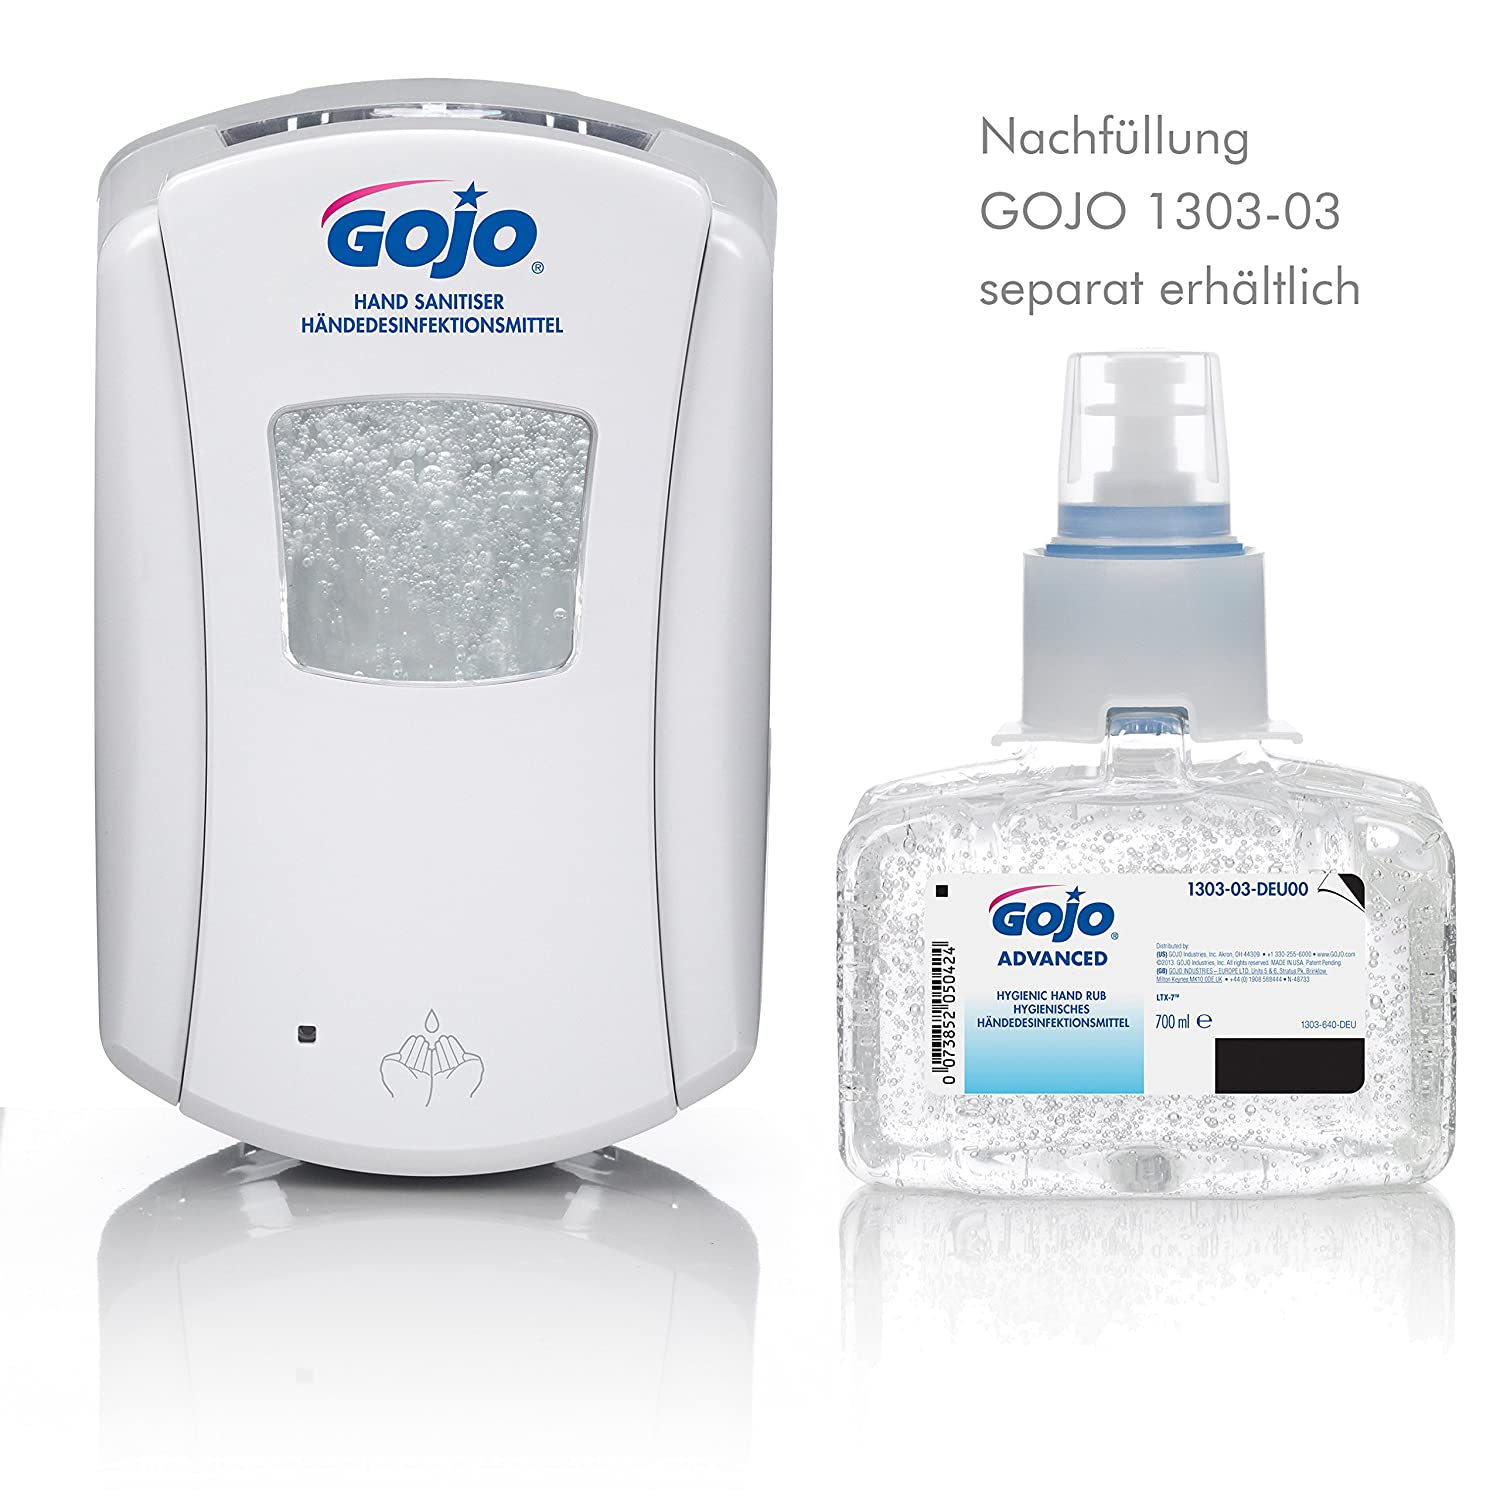 Gojo 1320 - 04 LTX de 7 dispensador de desinfectante con sensor, color blanco: Amazon.es: Industria, empresas y ciencia